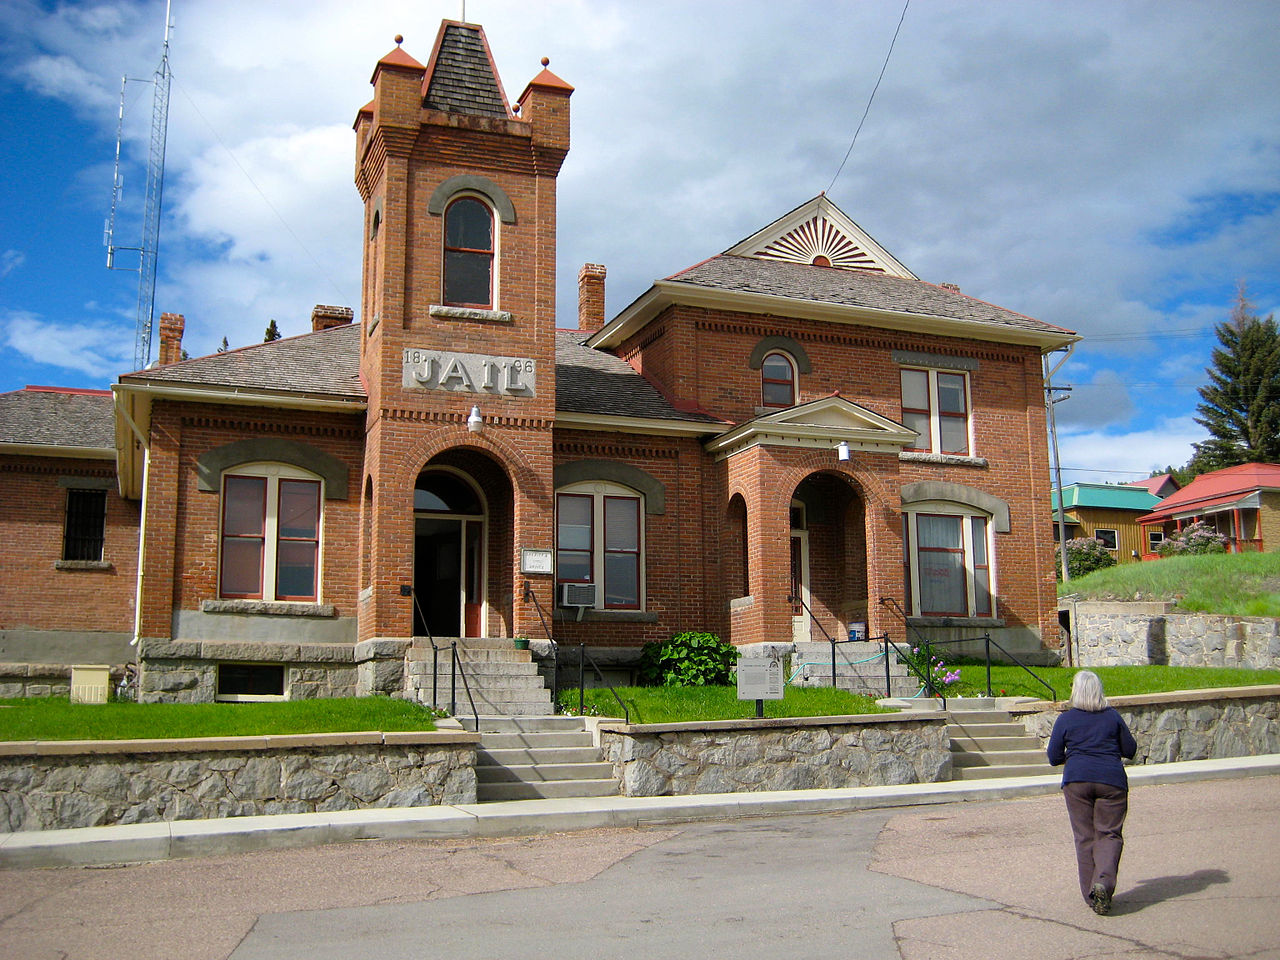 The historic Granite County Jail was built in 1896 and remains in use today.